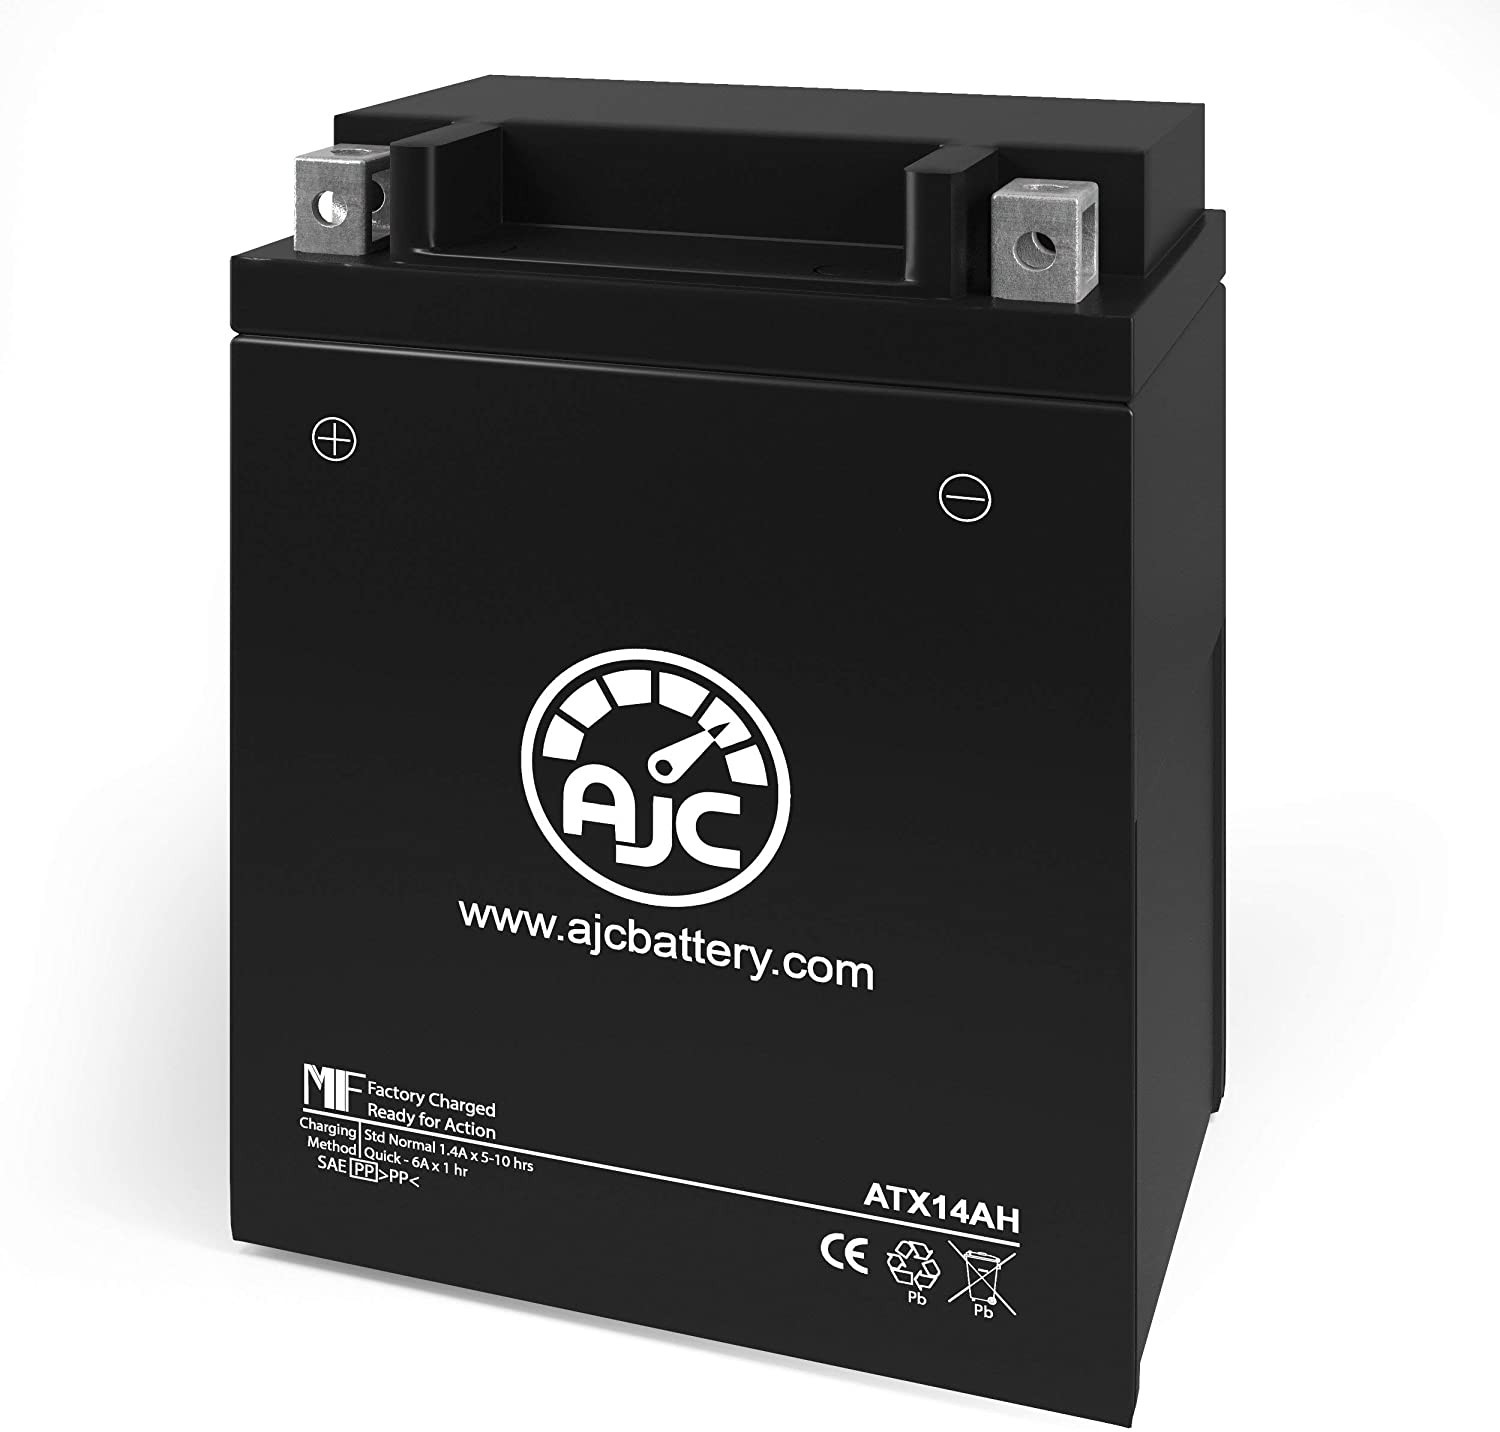 Polaris Scrambler 500 2X4 500CC ATV Replacement Battery (2001-2002) - This is an AJC Brand Replacement